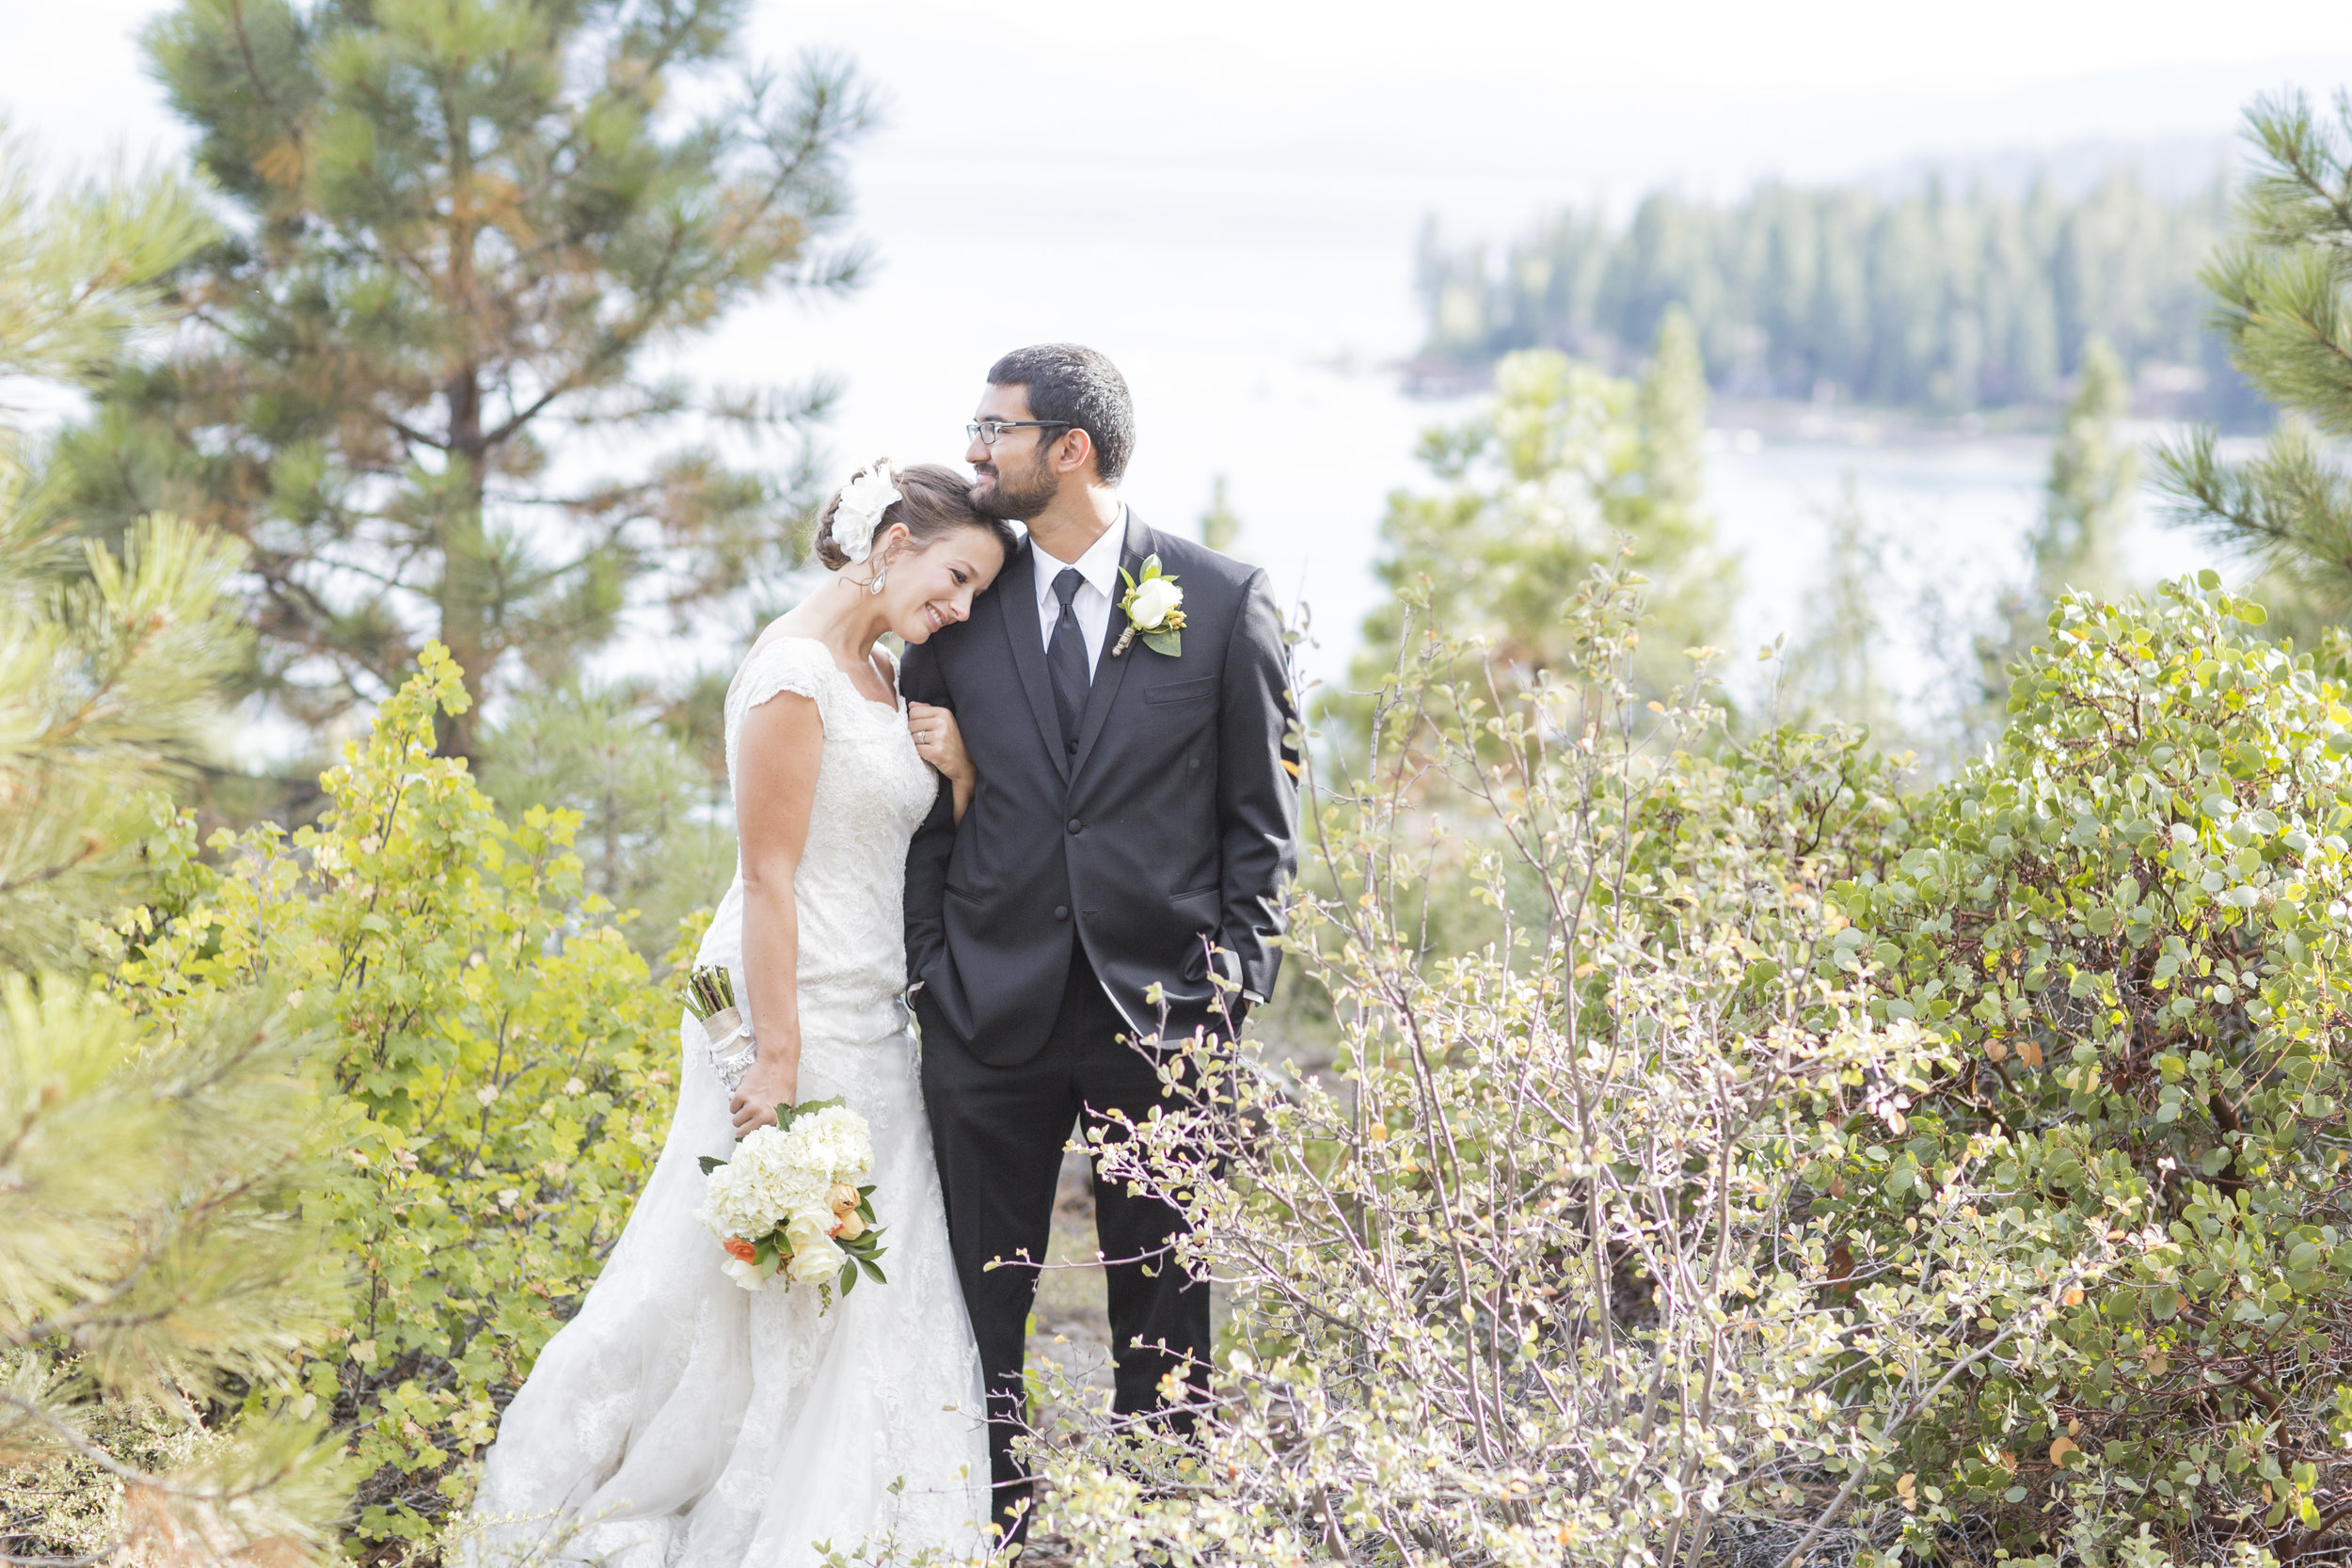 Stephanie+Chris-599.jpg